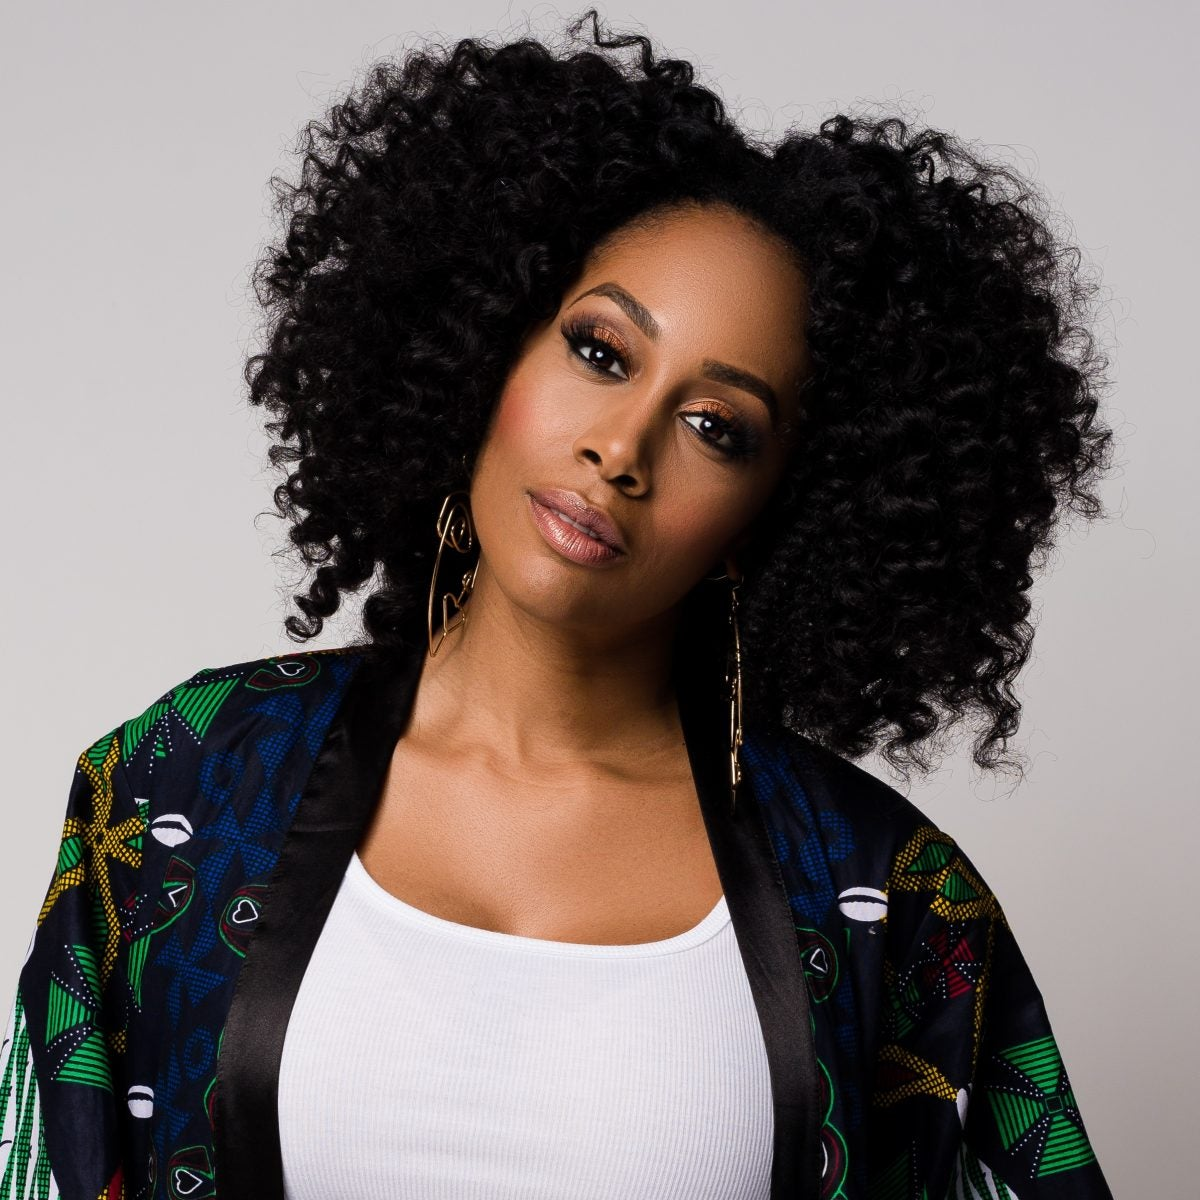 Simone Missick On The Daily Prayer Call That Sustained Her Faith And Family